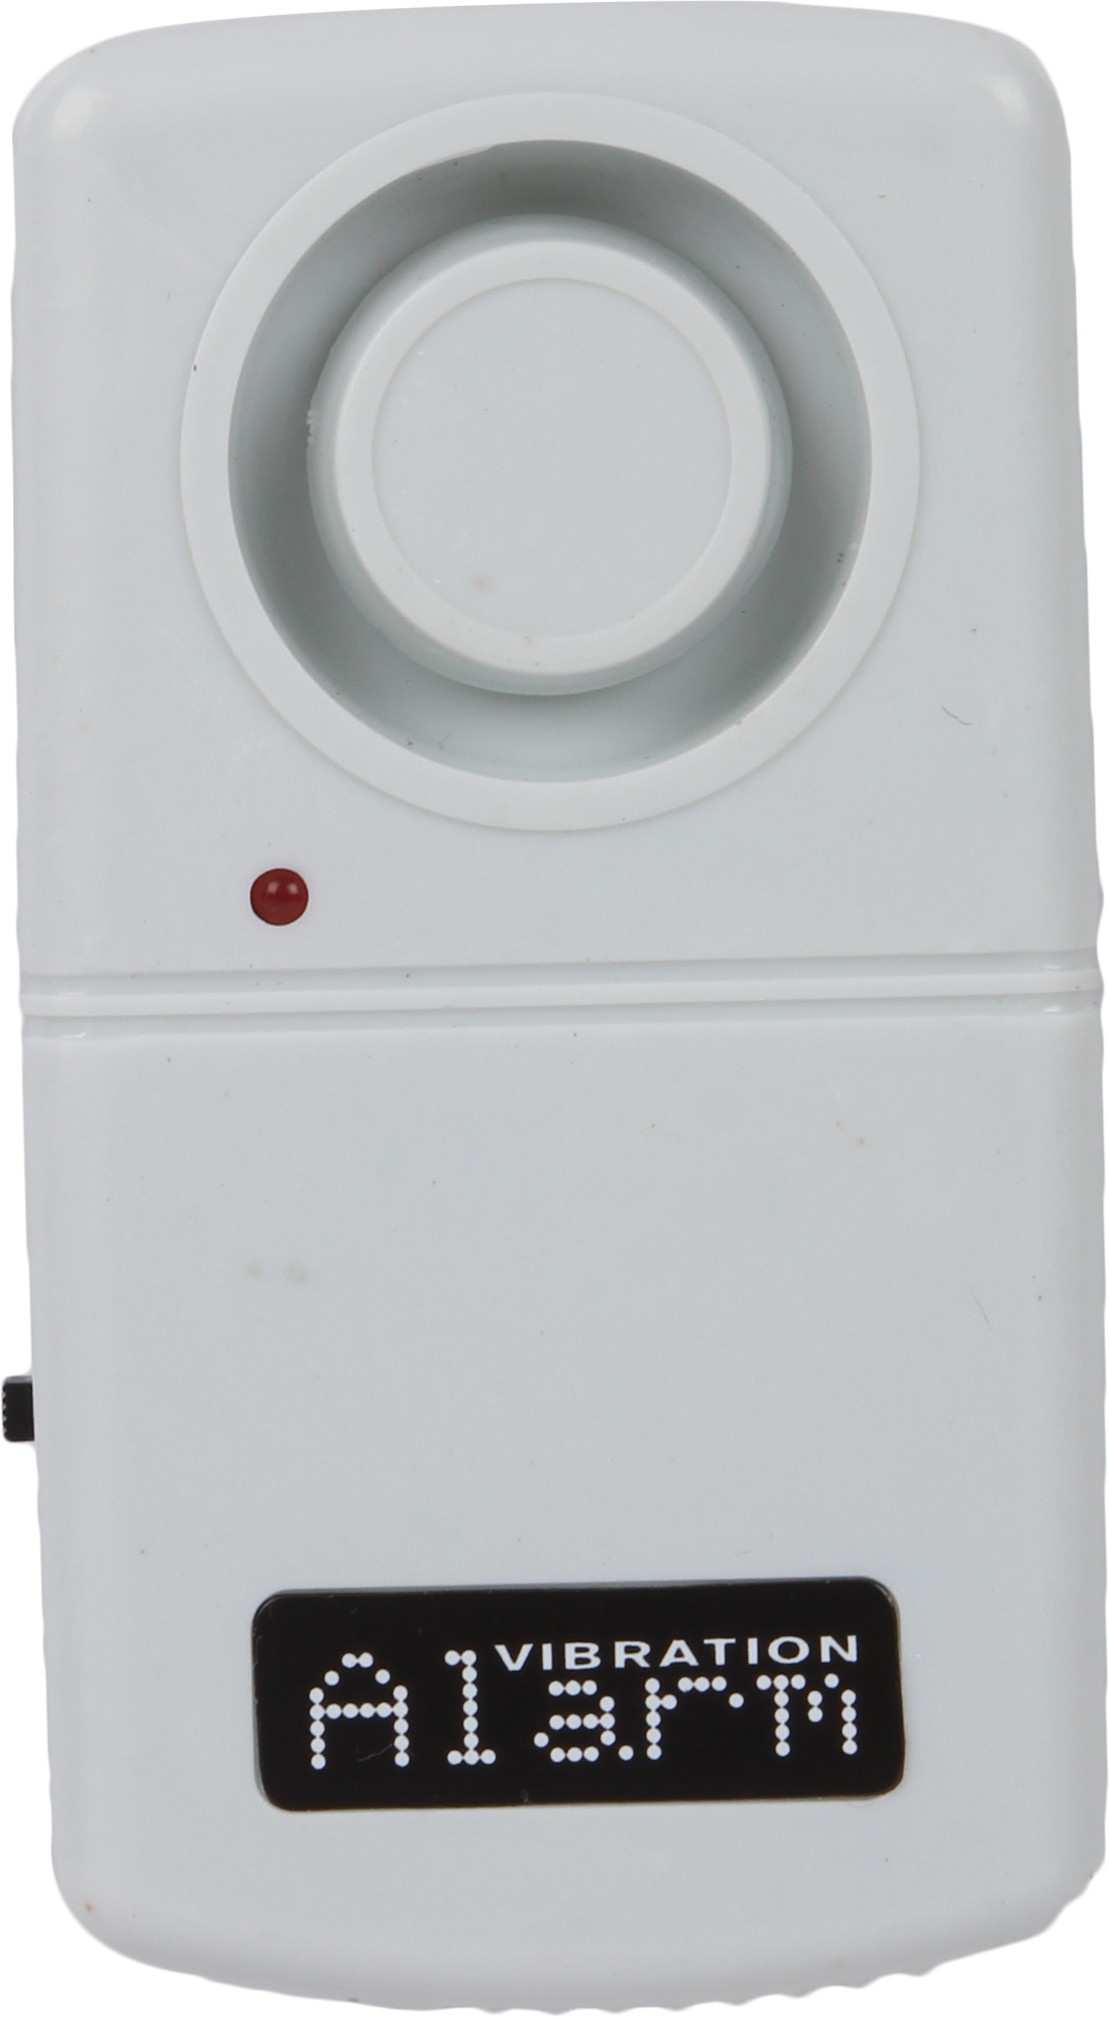 View Bright Cove se1 Wireless Sensor Security System Home Appliances Price Online(Bright Cove)